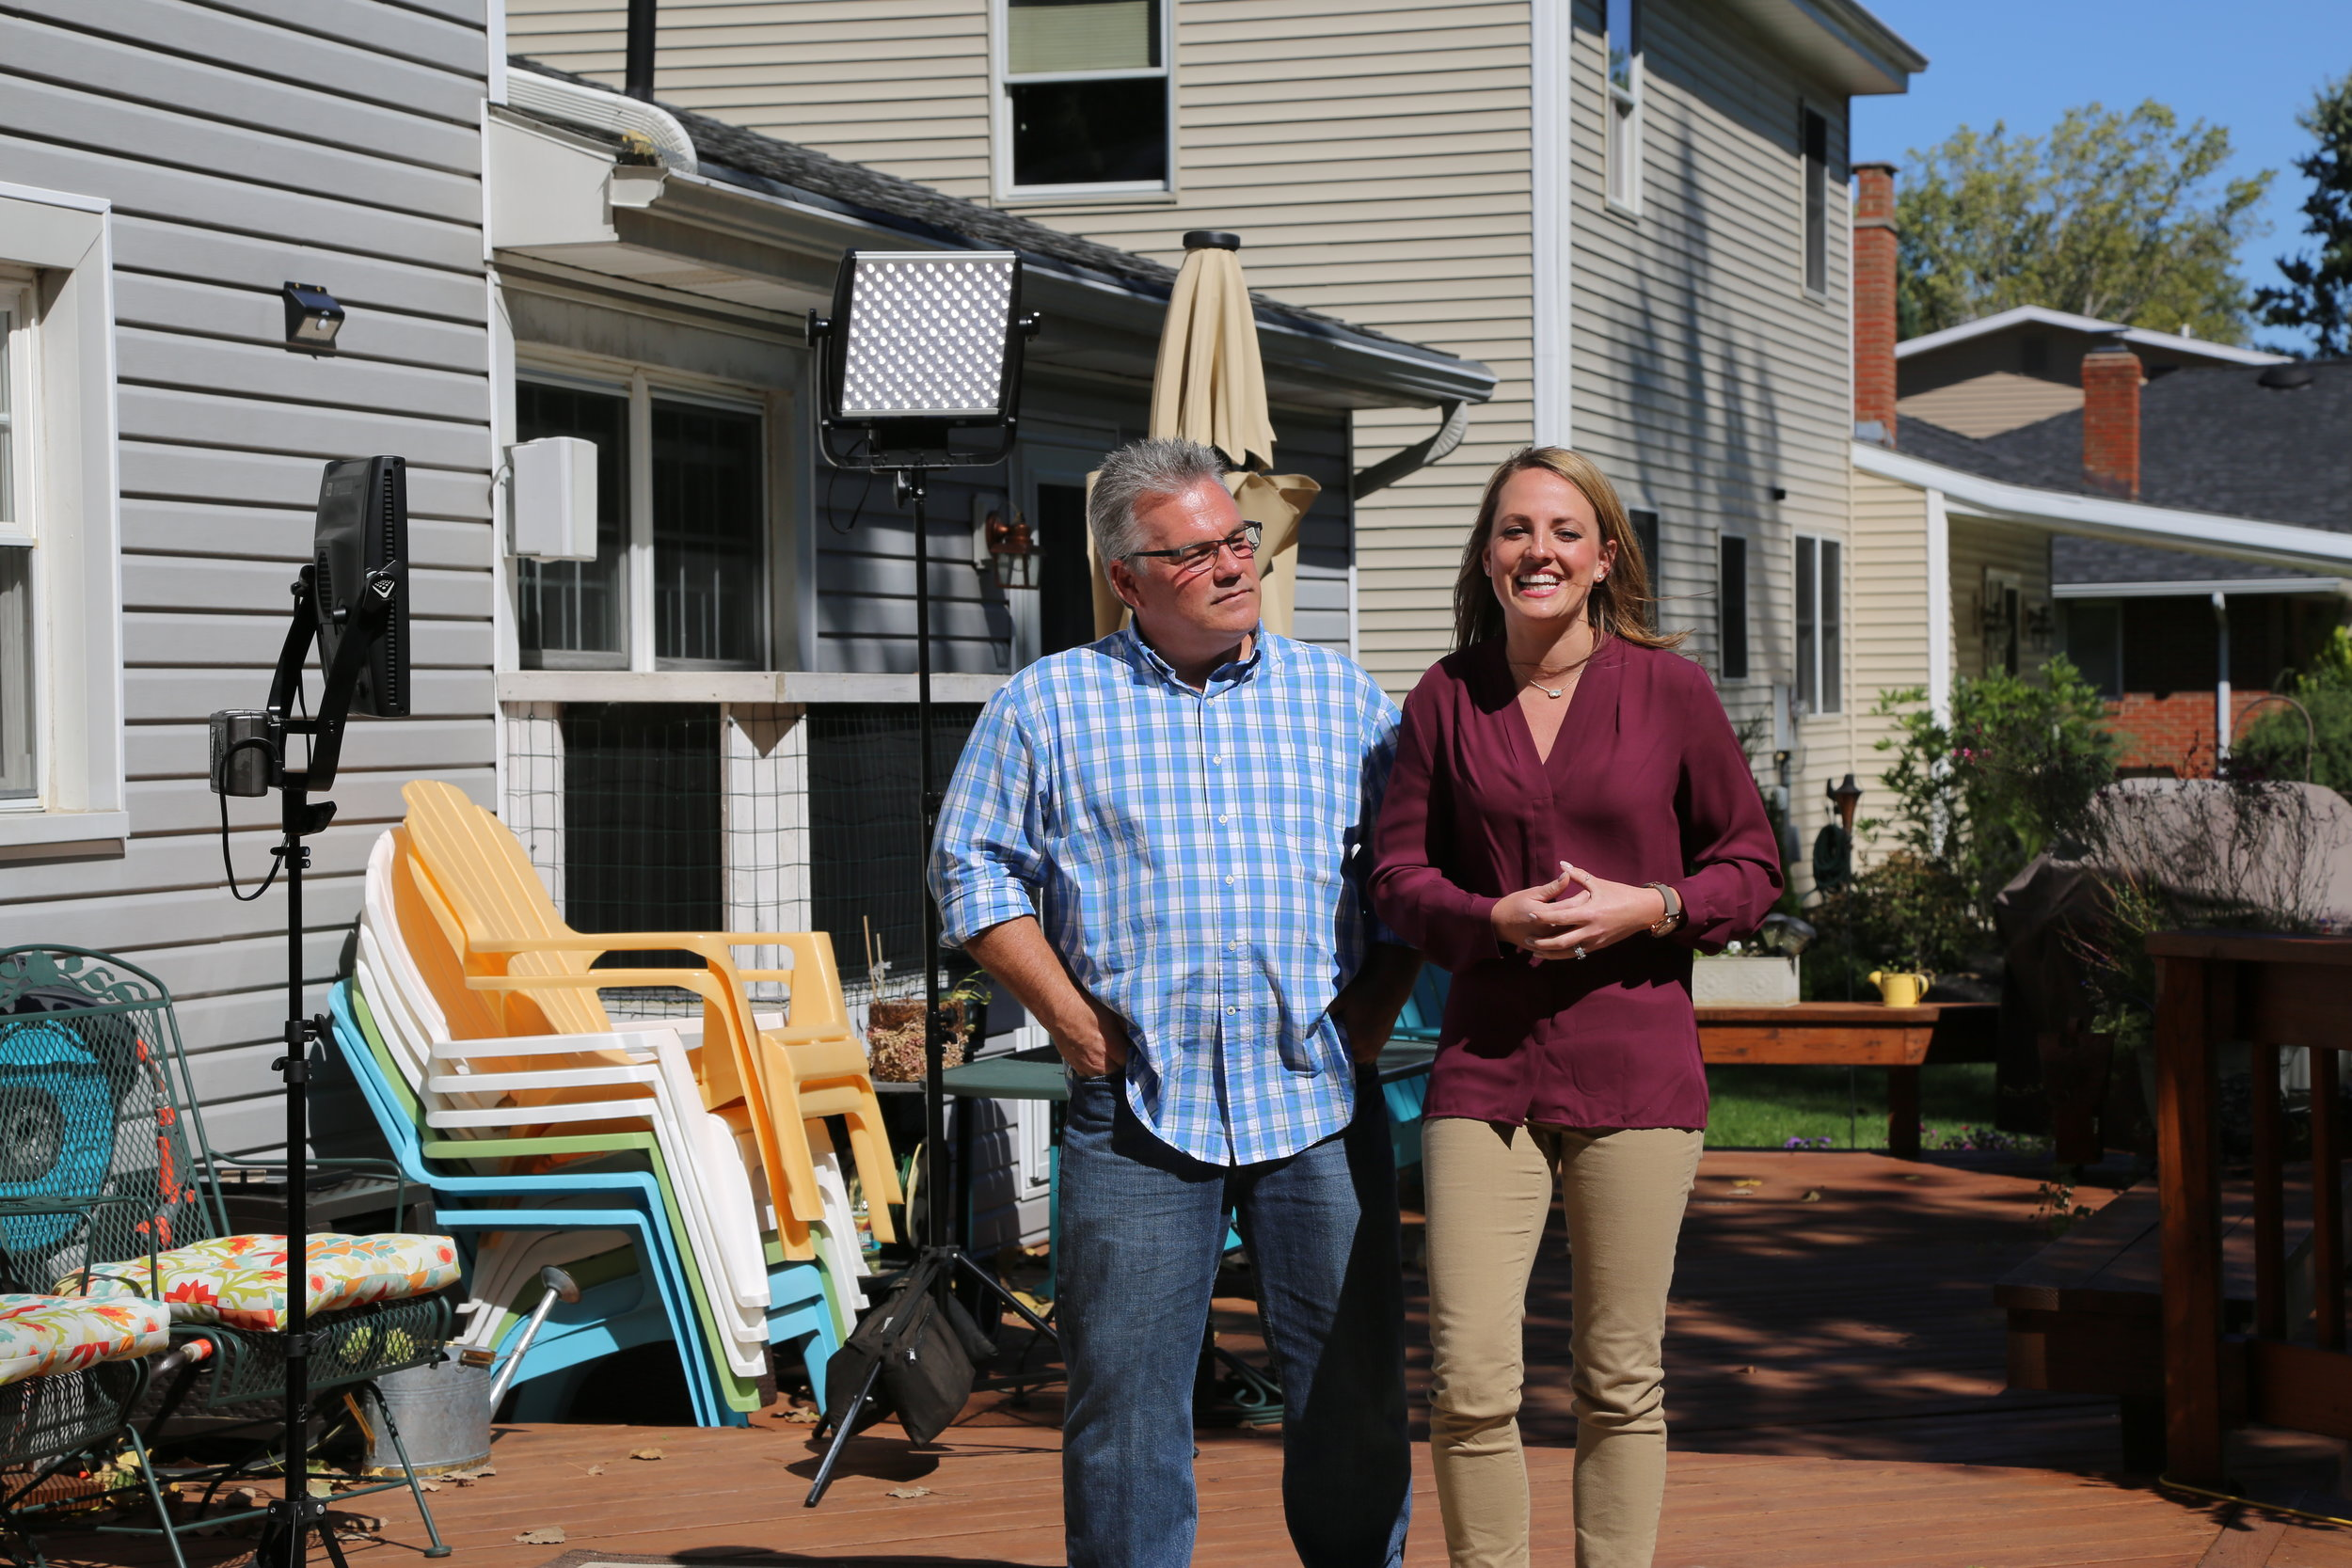 Vanessa thought she and her family were just interviewing as finalists for a treehouse makeover contest. Little did she know that her dad, Steve was in on the secret that I was just around the corner!